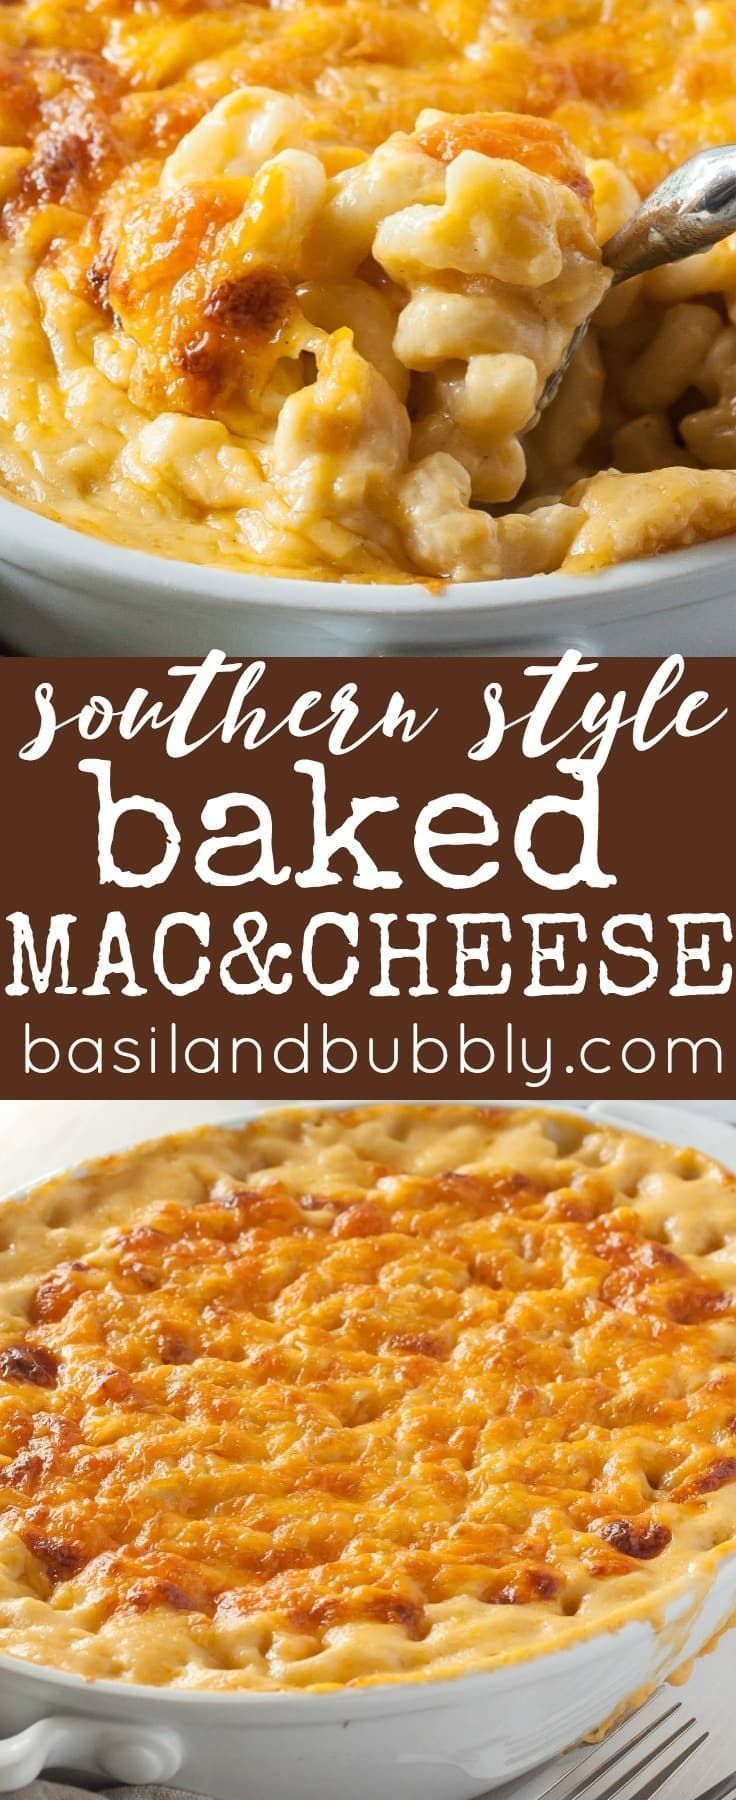 Absolutely perfect Southern Style Baked Macaroni and Cheese recipe.  Easy, delicious holiday or weeknight side dish that's the perfect amount of creamy.